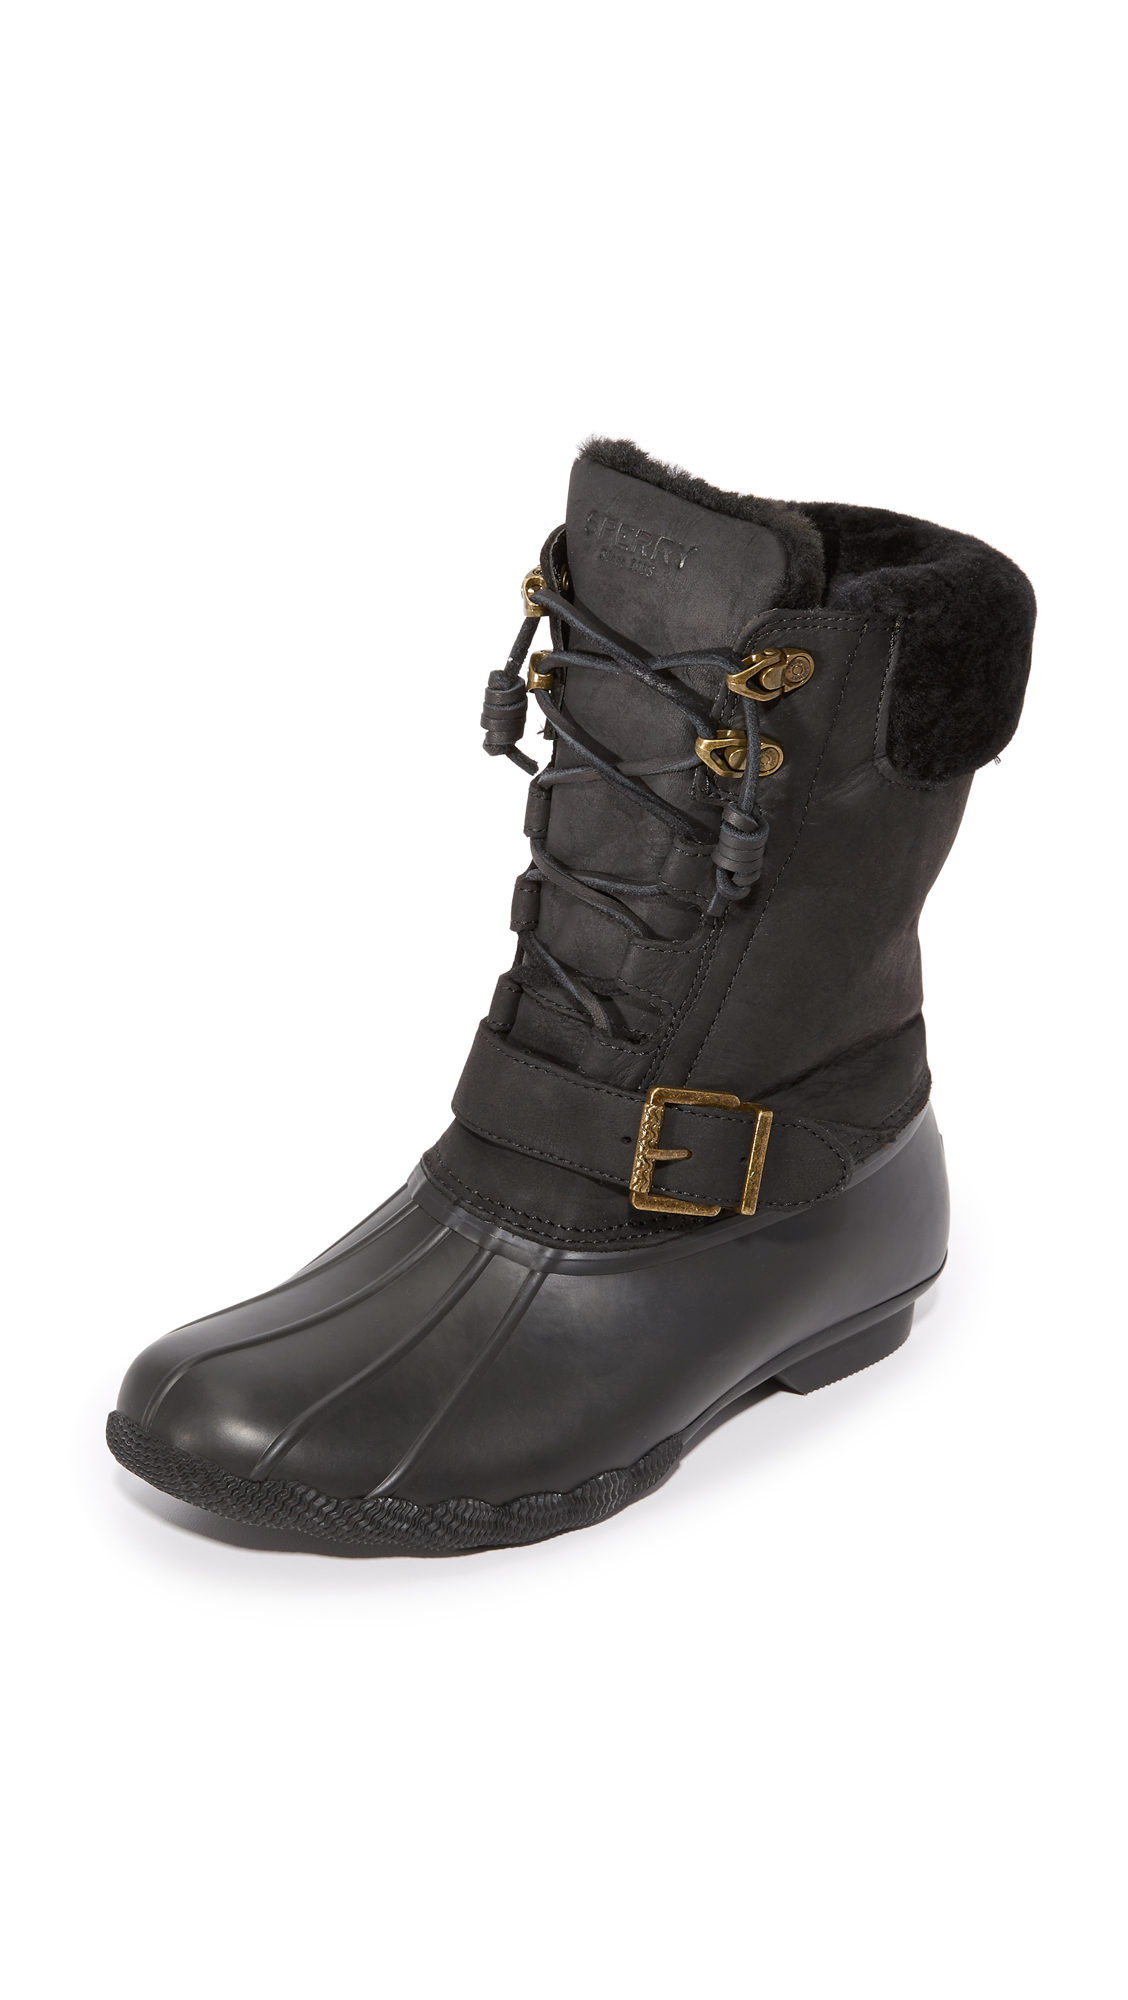 sperry female sperry saltwater misty boots black